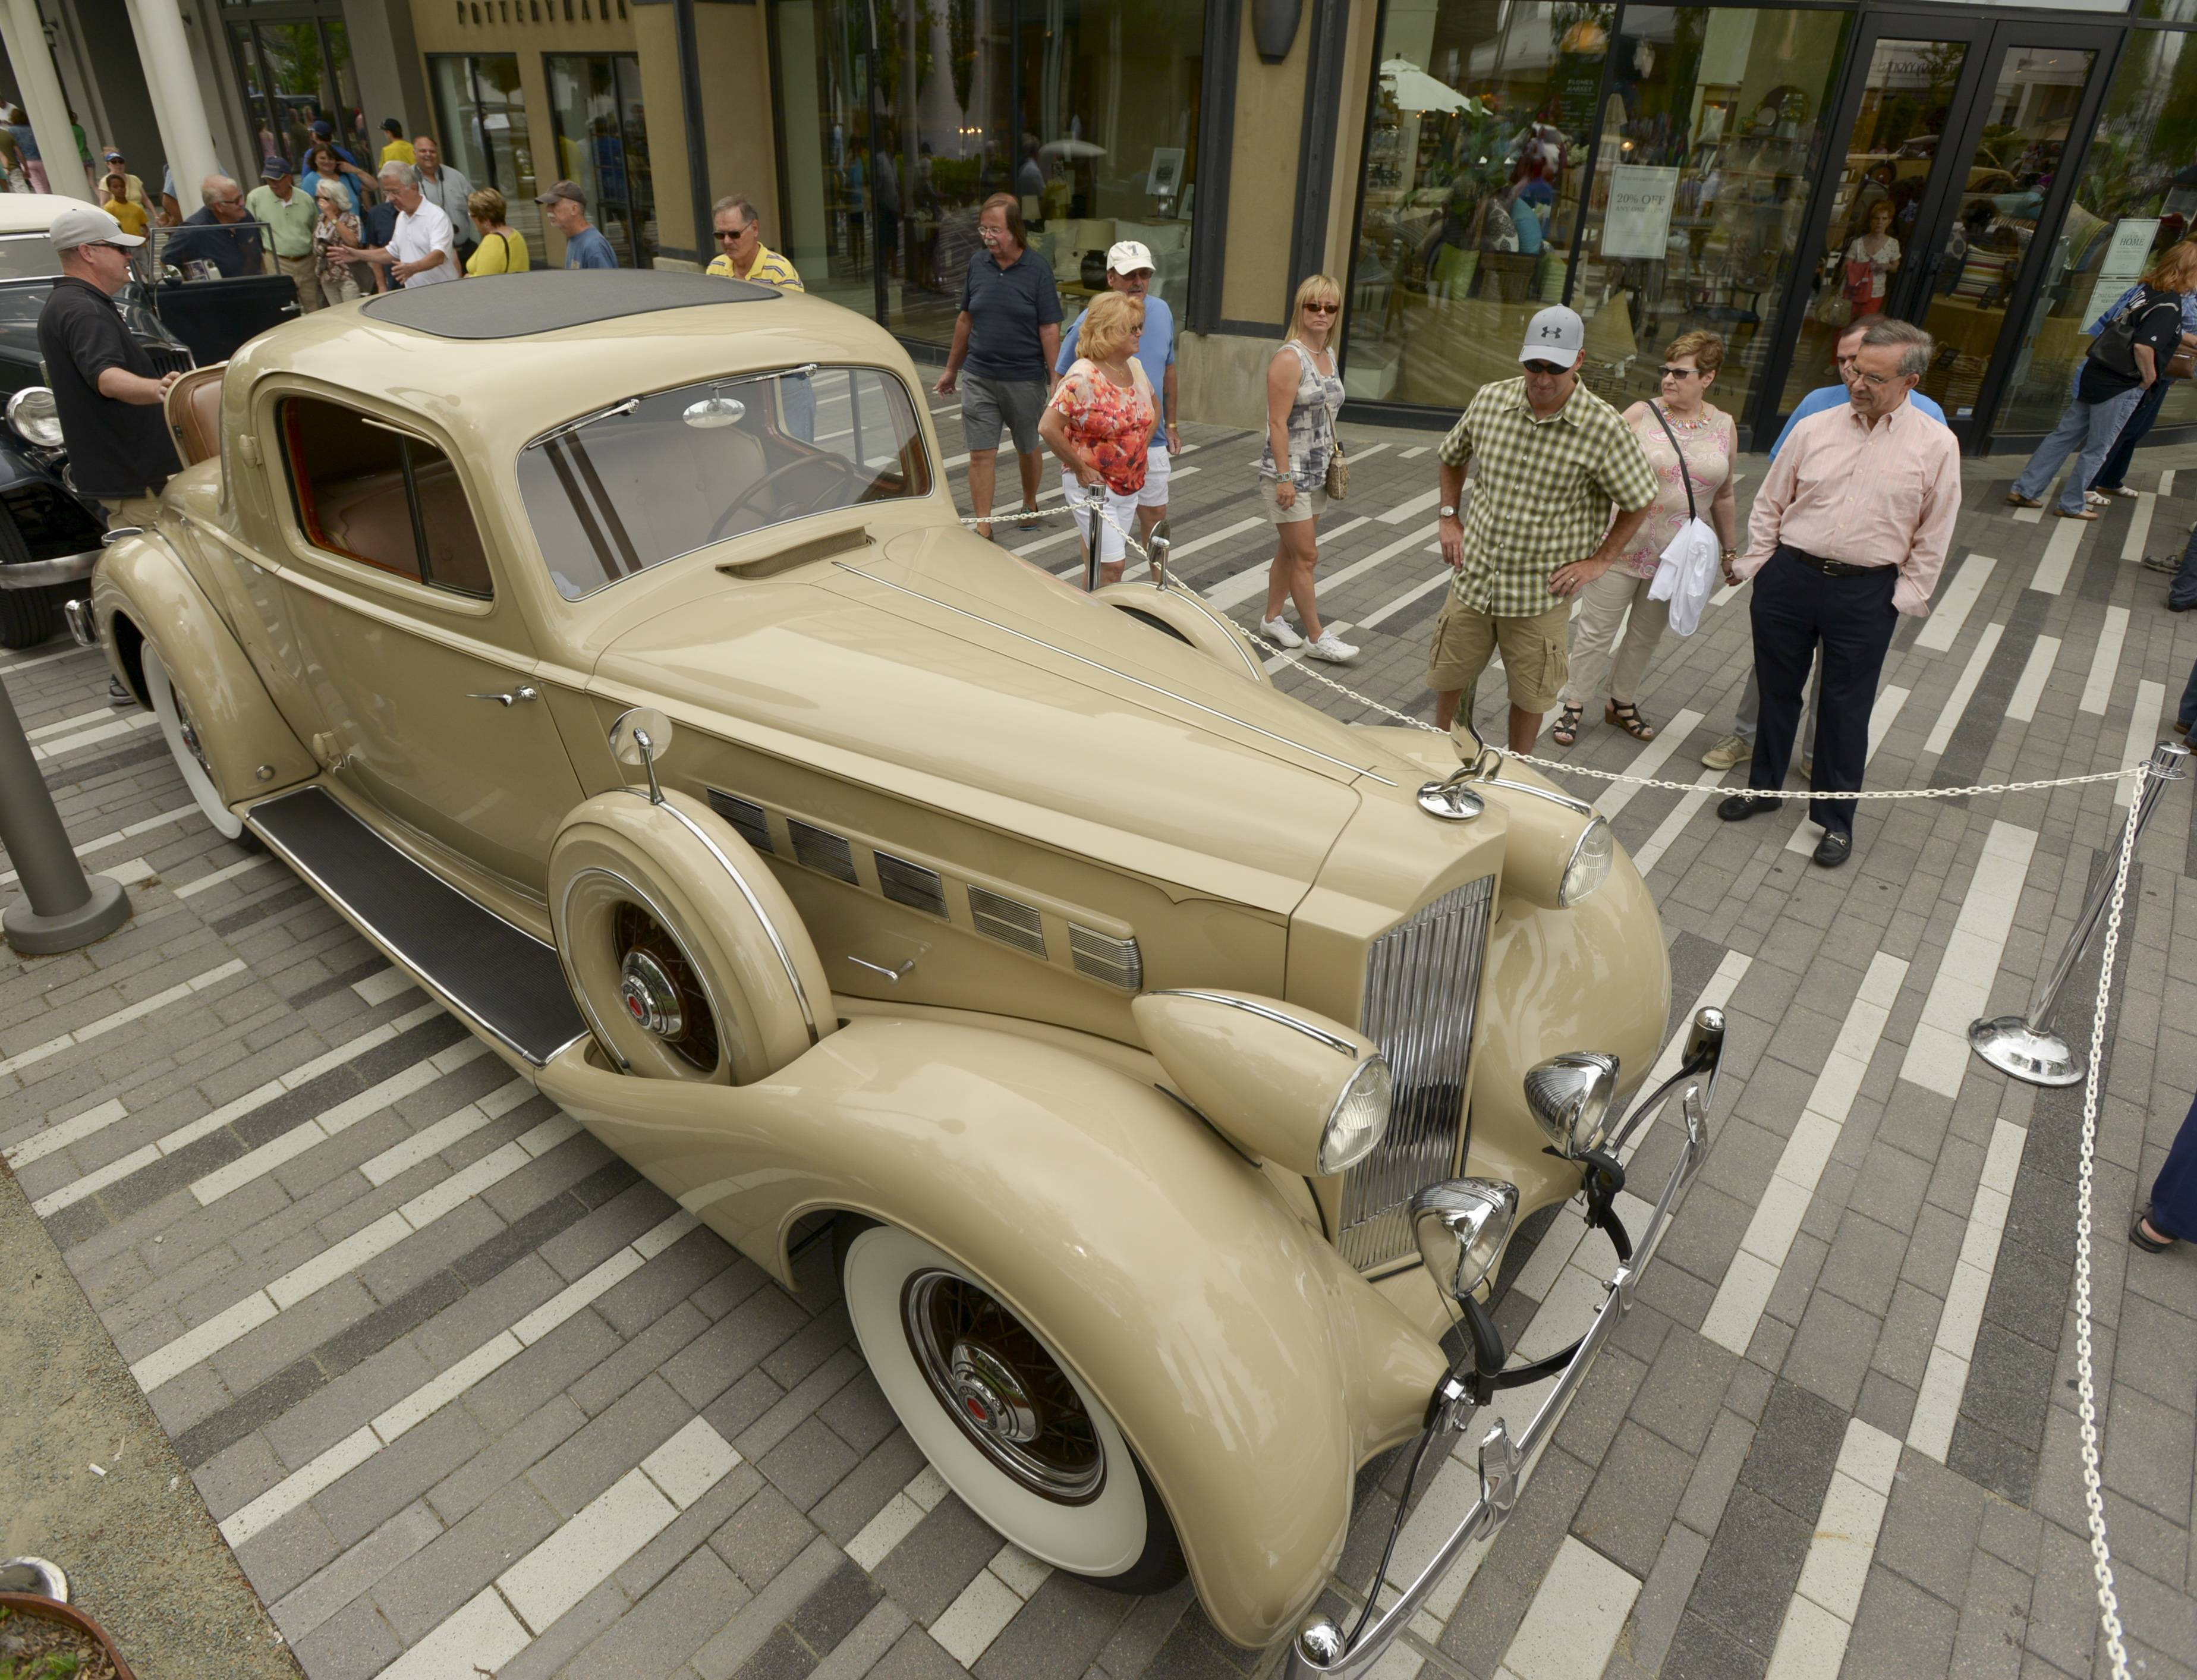 A 1935 Packard 1205 Super 8 Coupe was among the attractions at the 46th annual Father's Day Classic Car Show Sunday at Oakbrook Center.